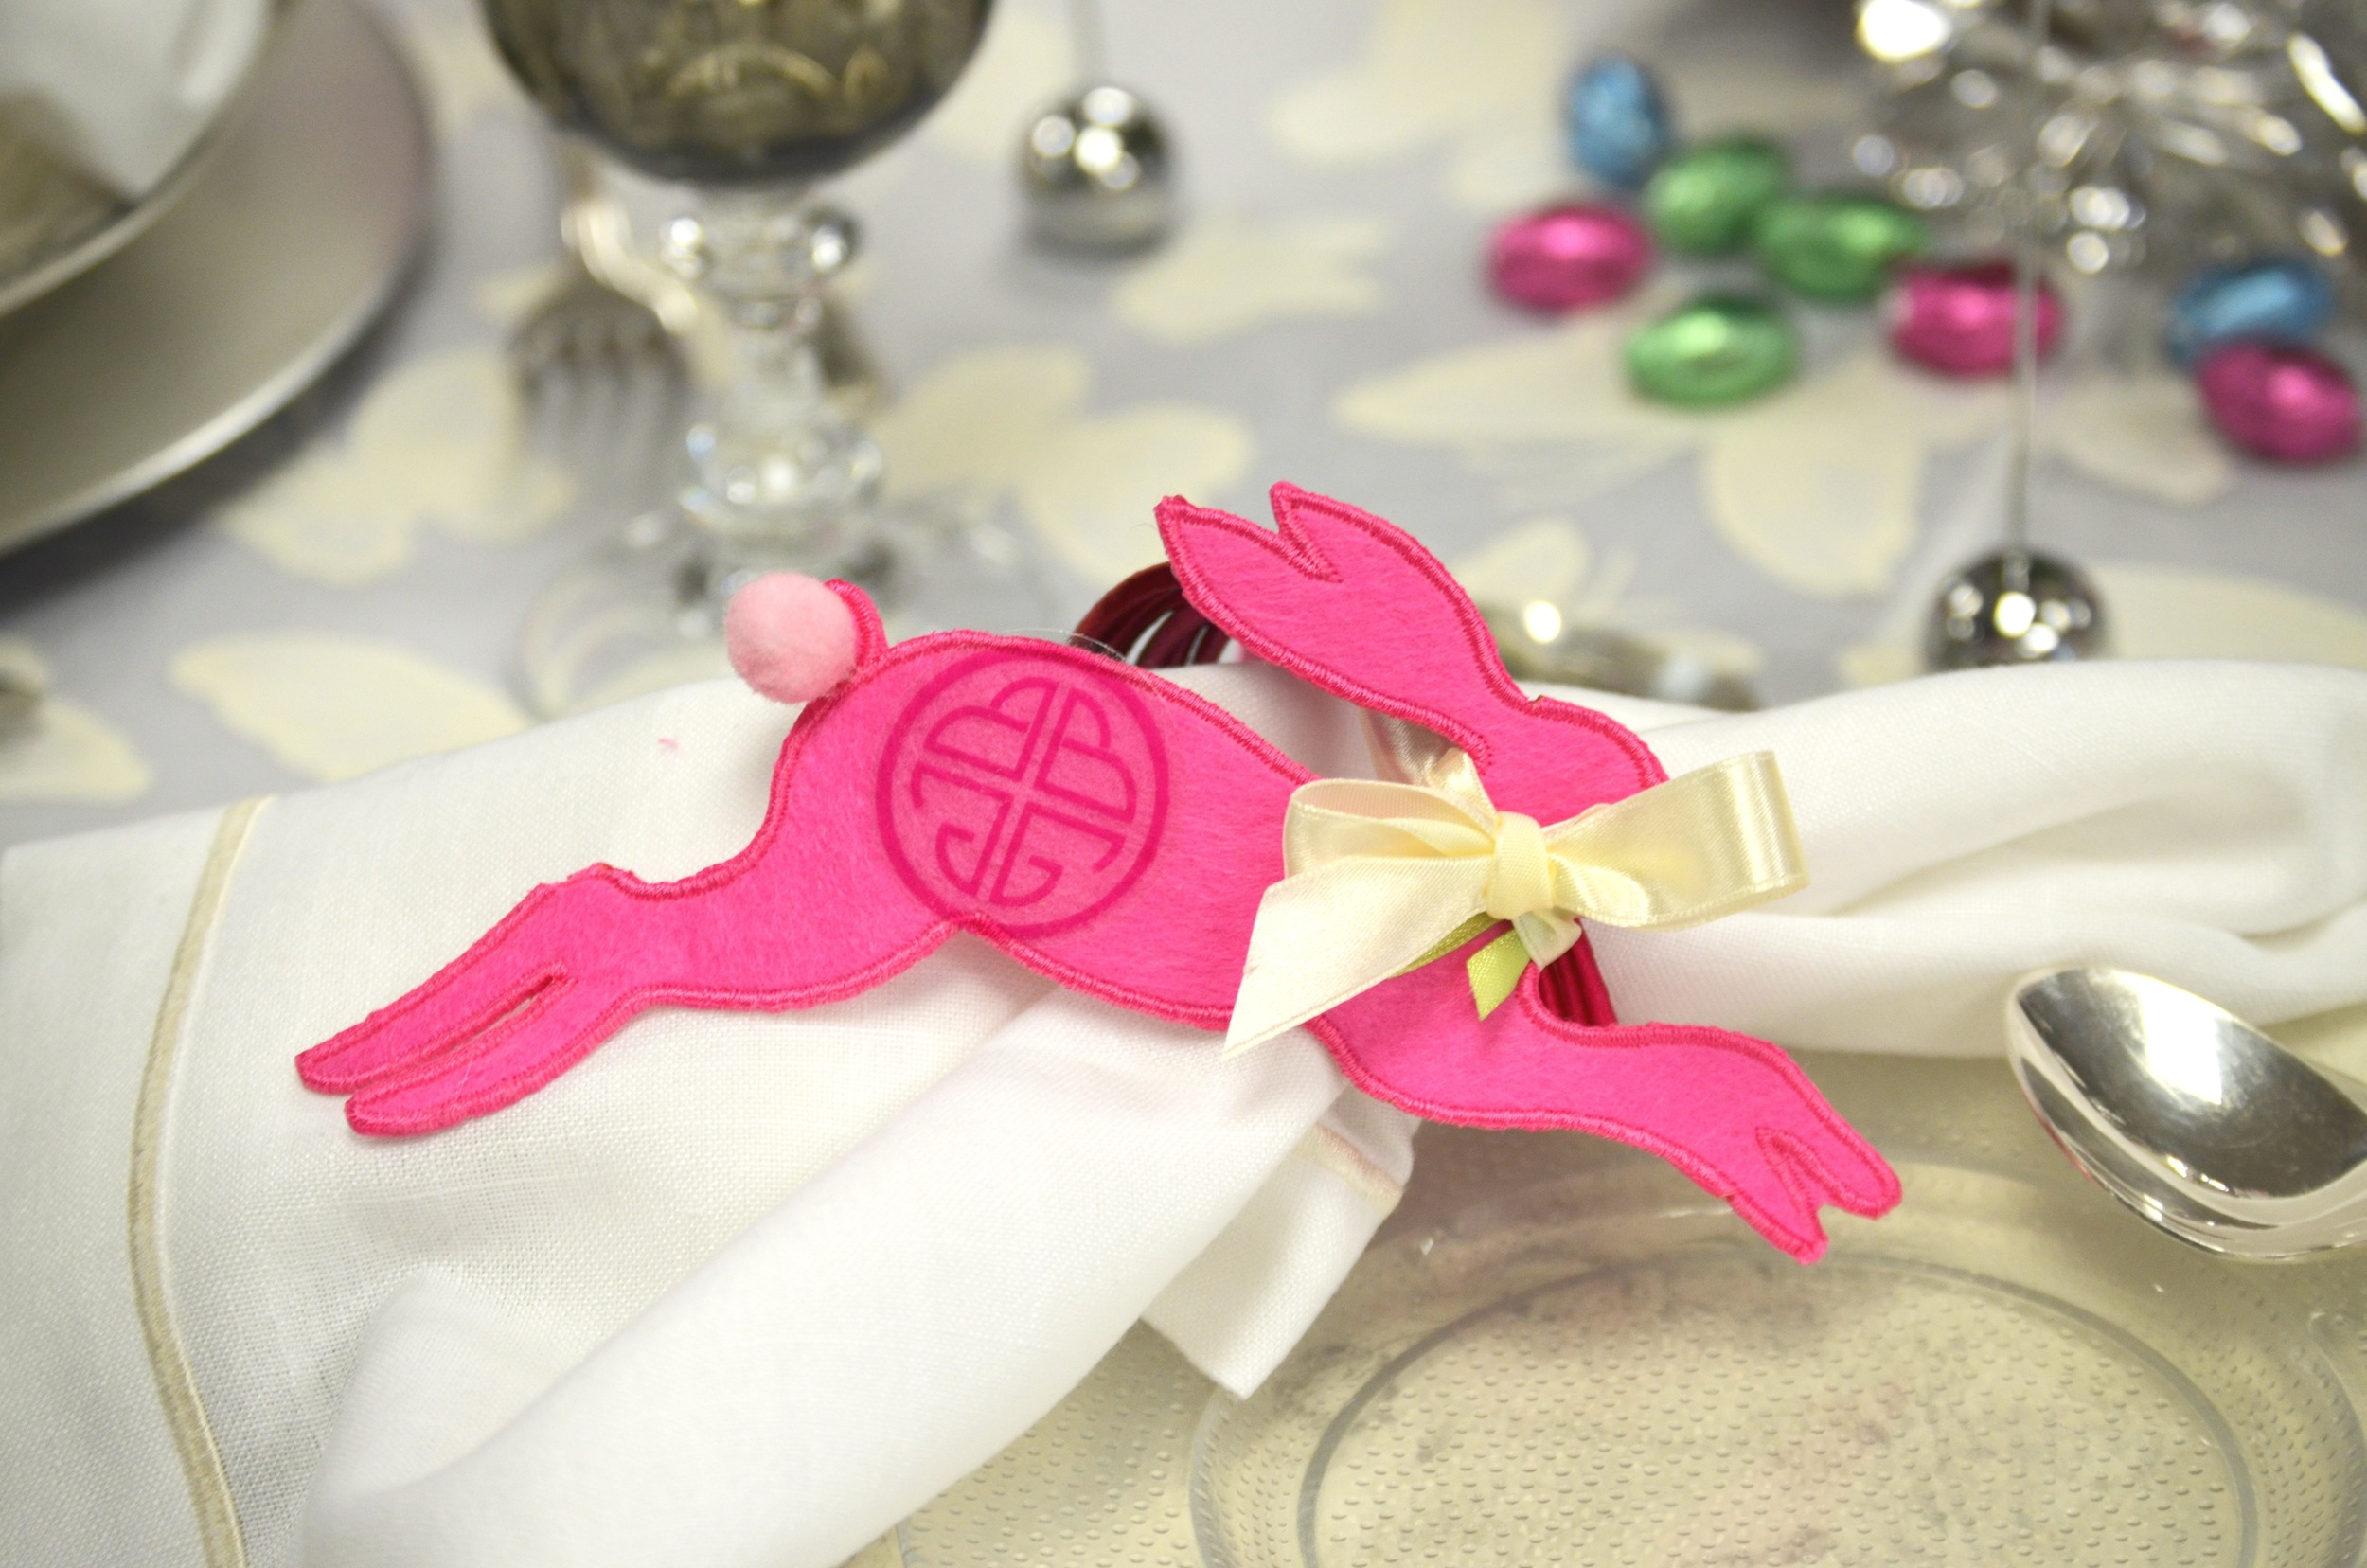 Napkin rings are personalized with a BuDhaGirl bunny and a set of pink  chakra bangles  for each guest.